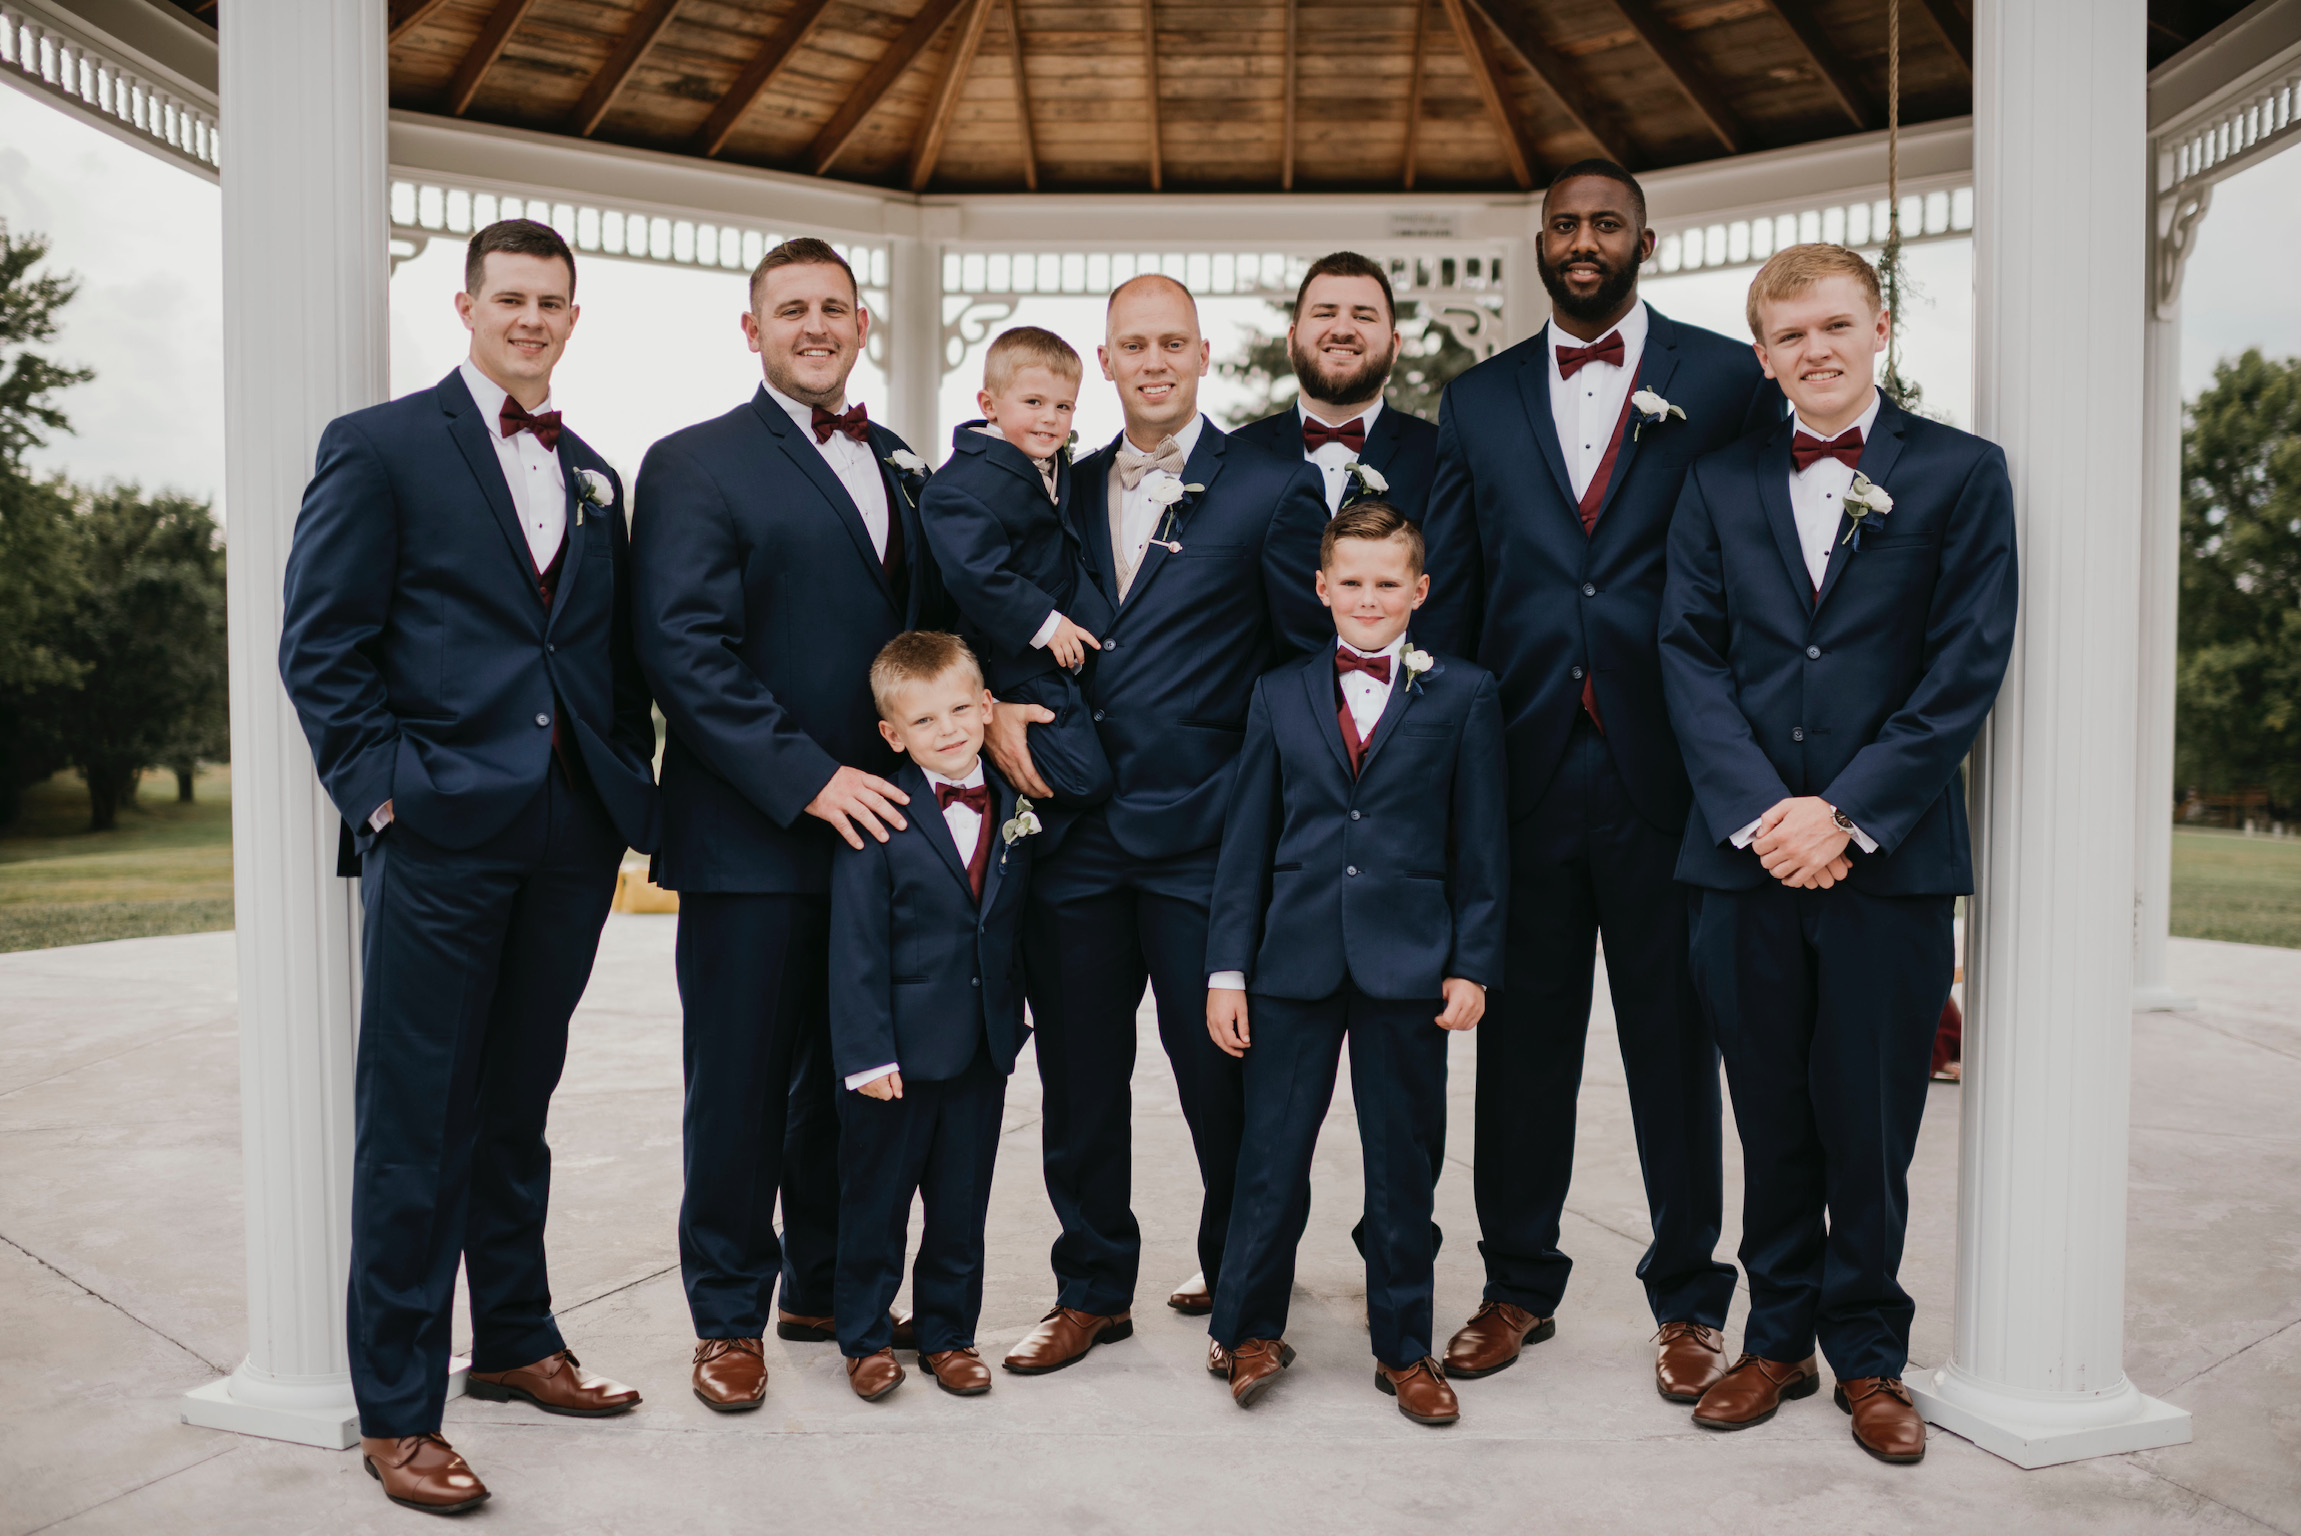 wedding party groomsmen and groom in tuxes at wedding